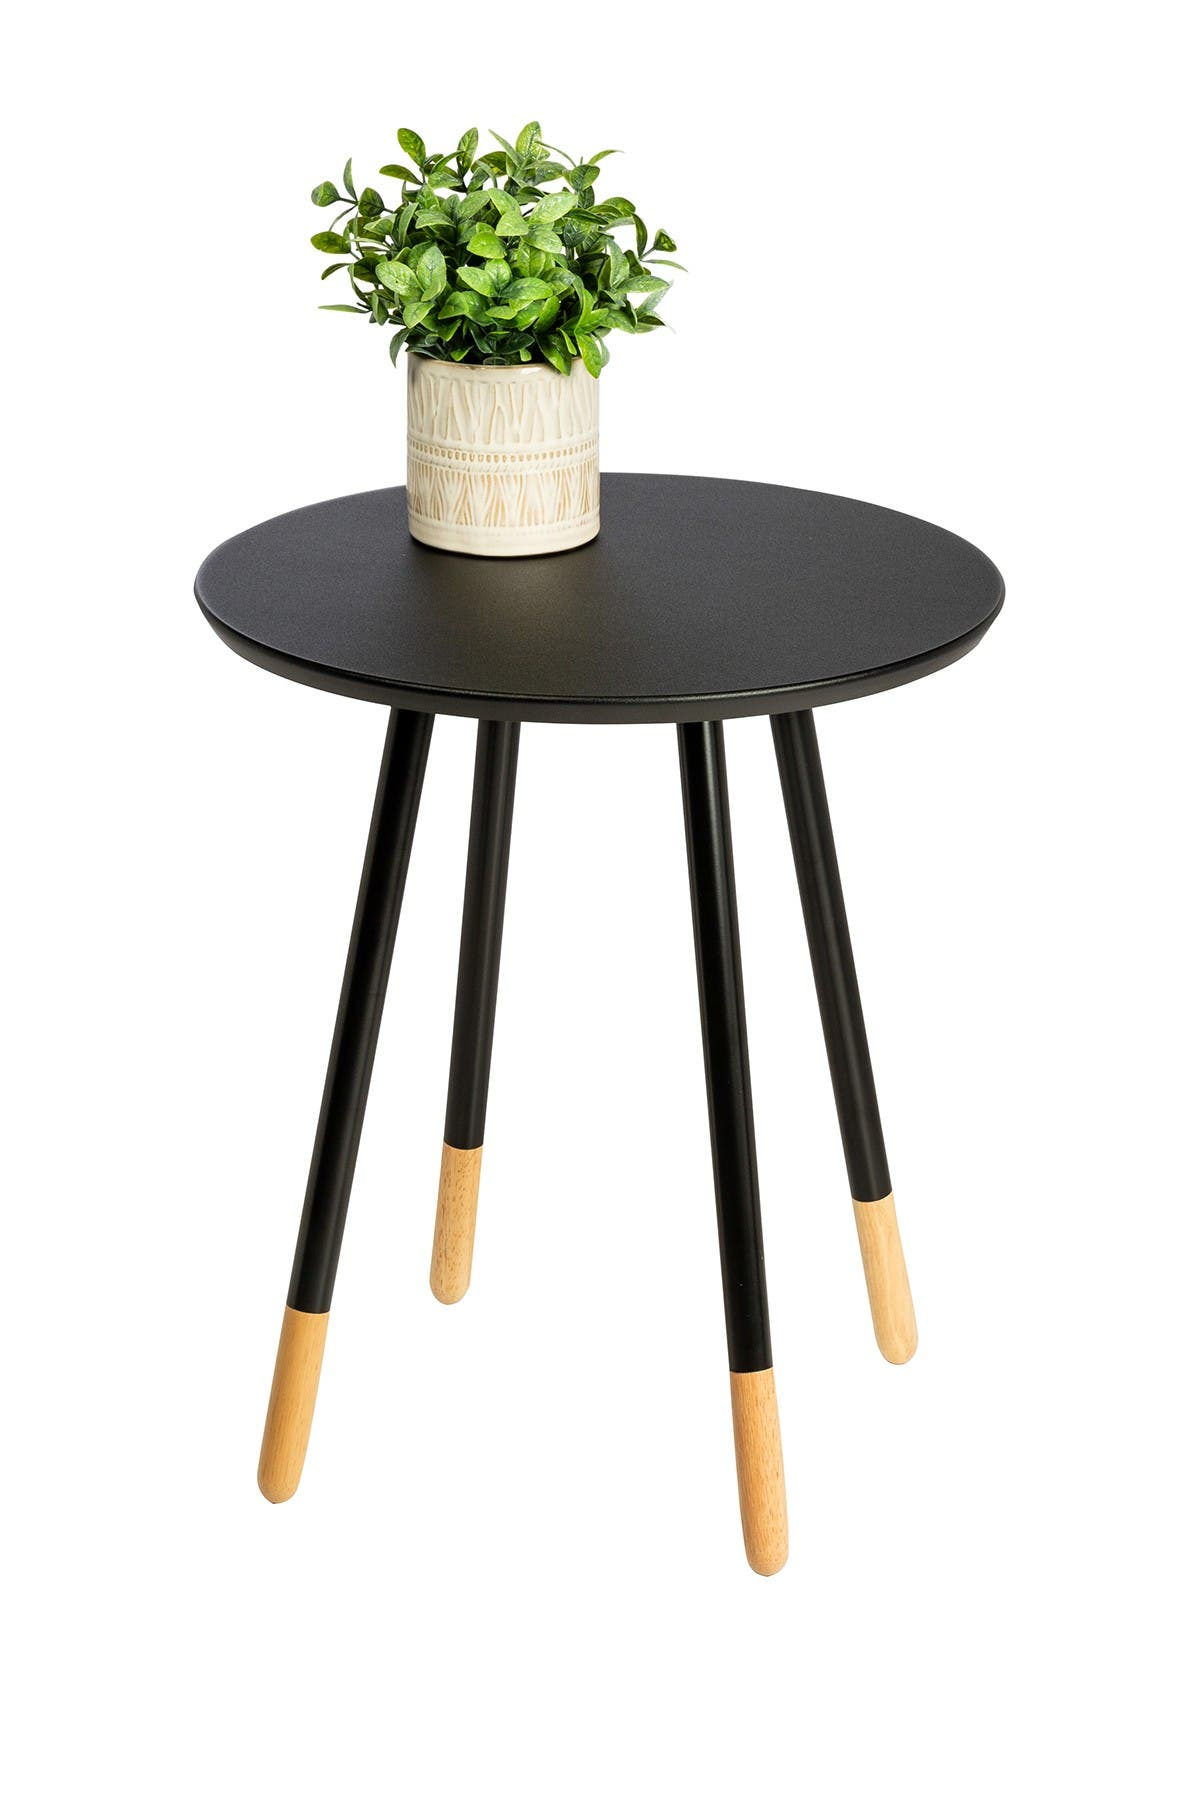 Image of Honey-Can-Do Round End Table